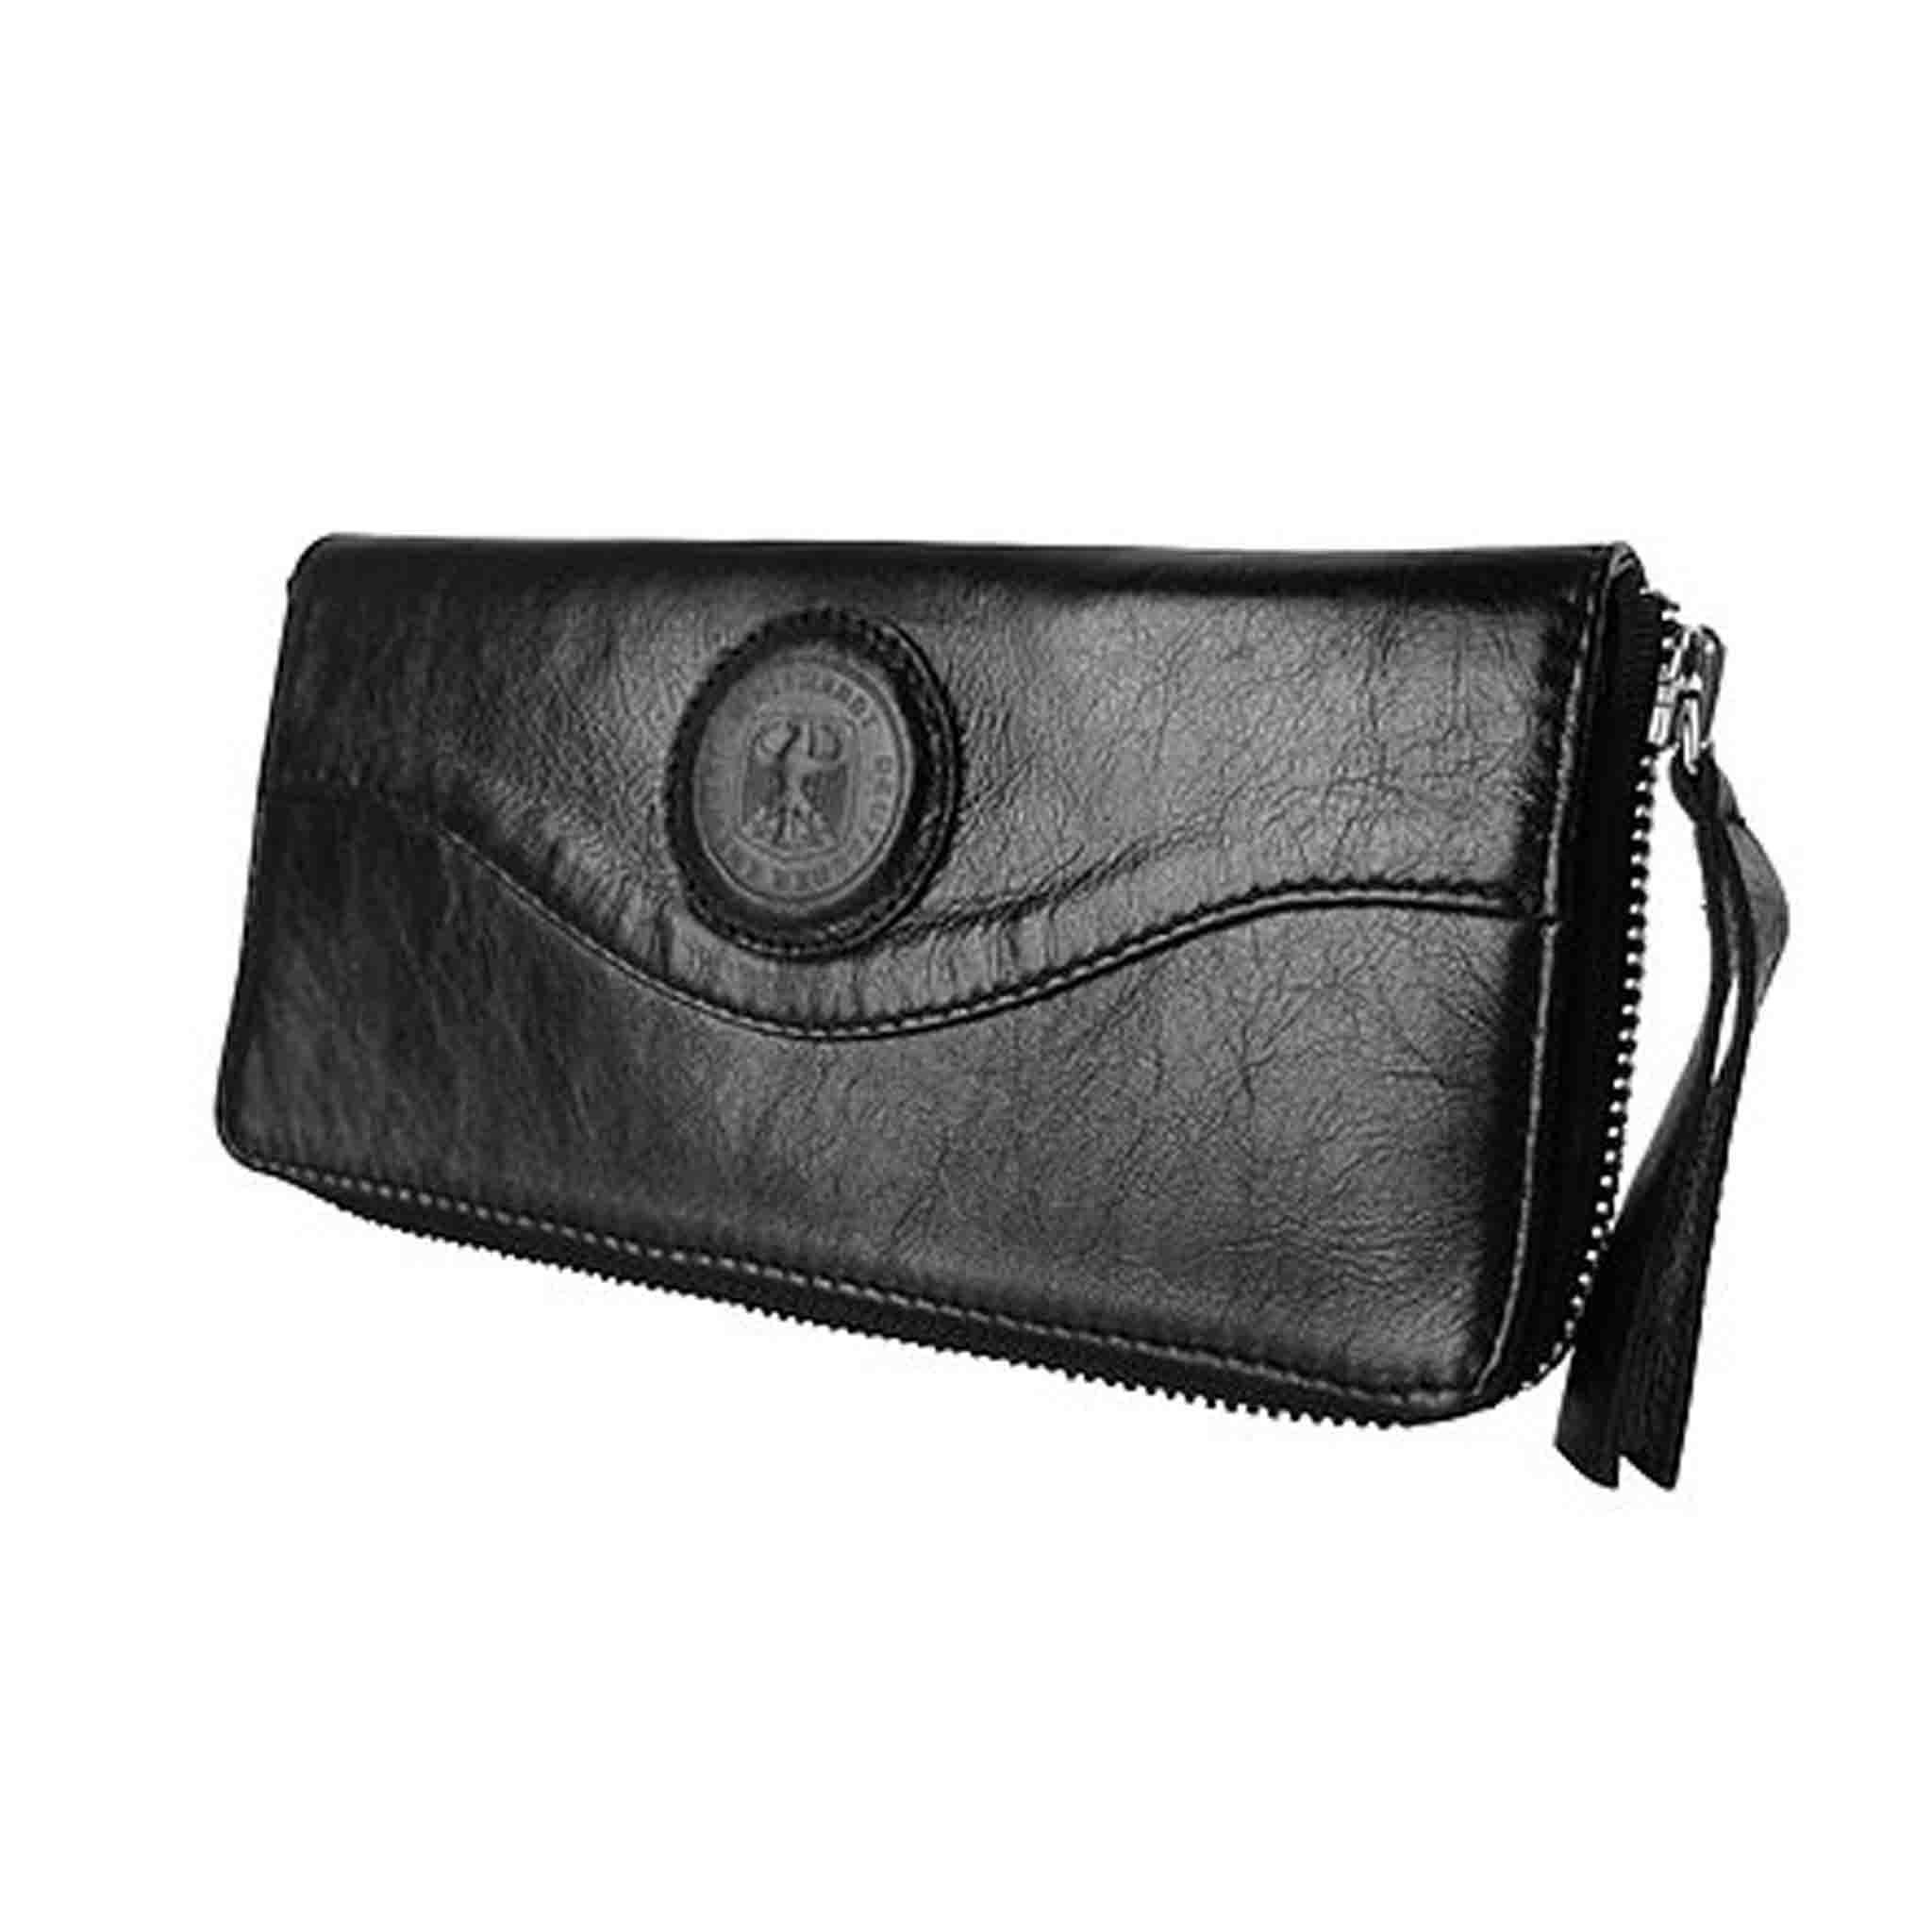 BLACK LEATHER WALLET WOMEN'S WAHRUNG